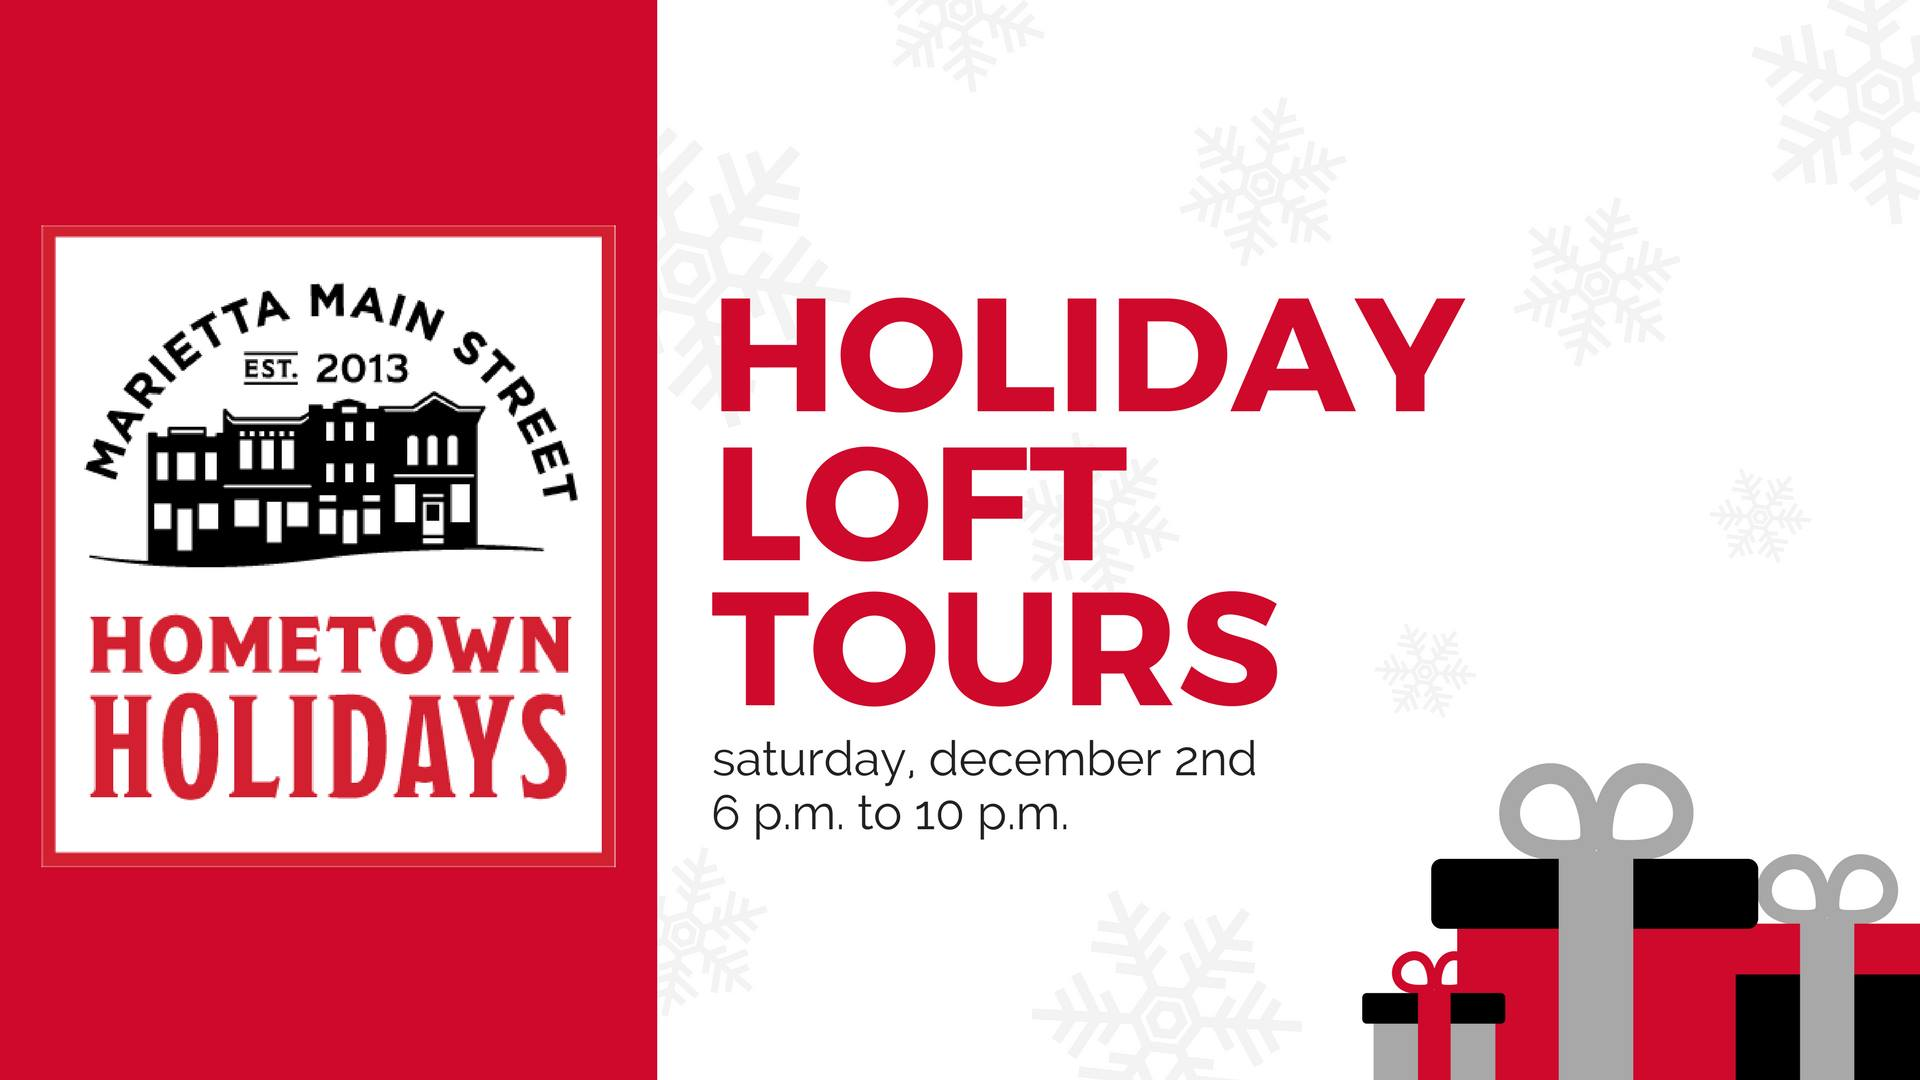 Holiday Loft Tours